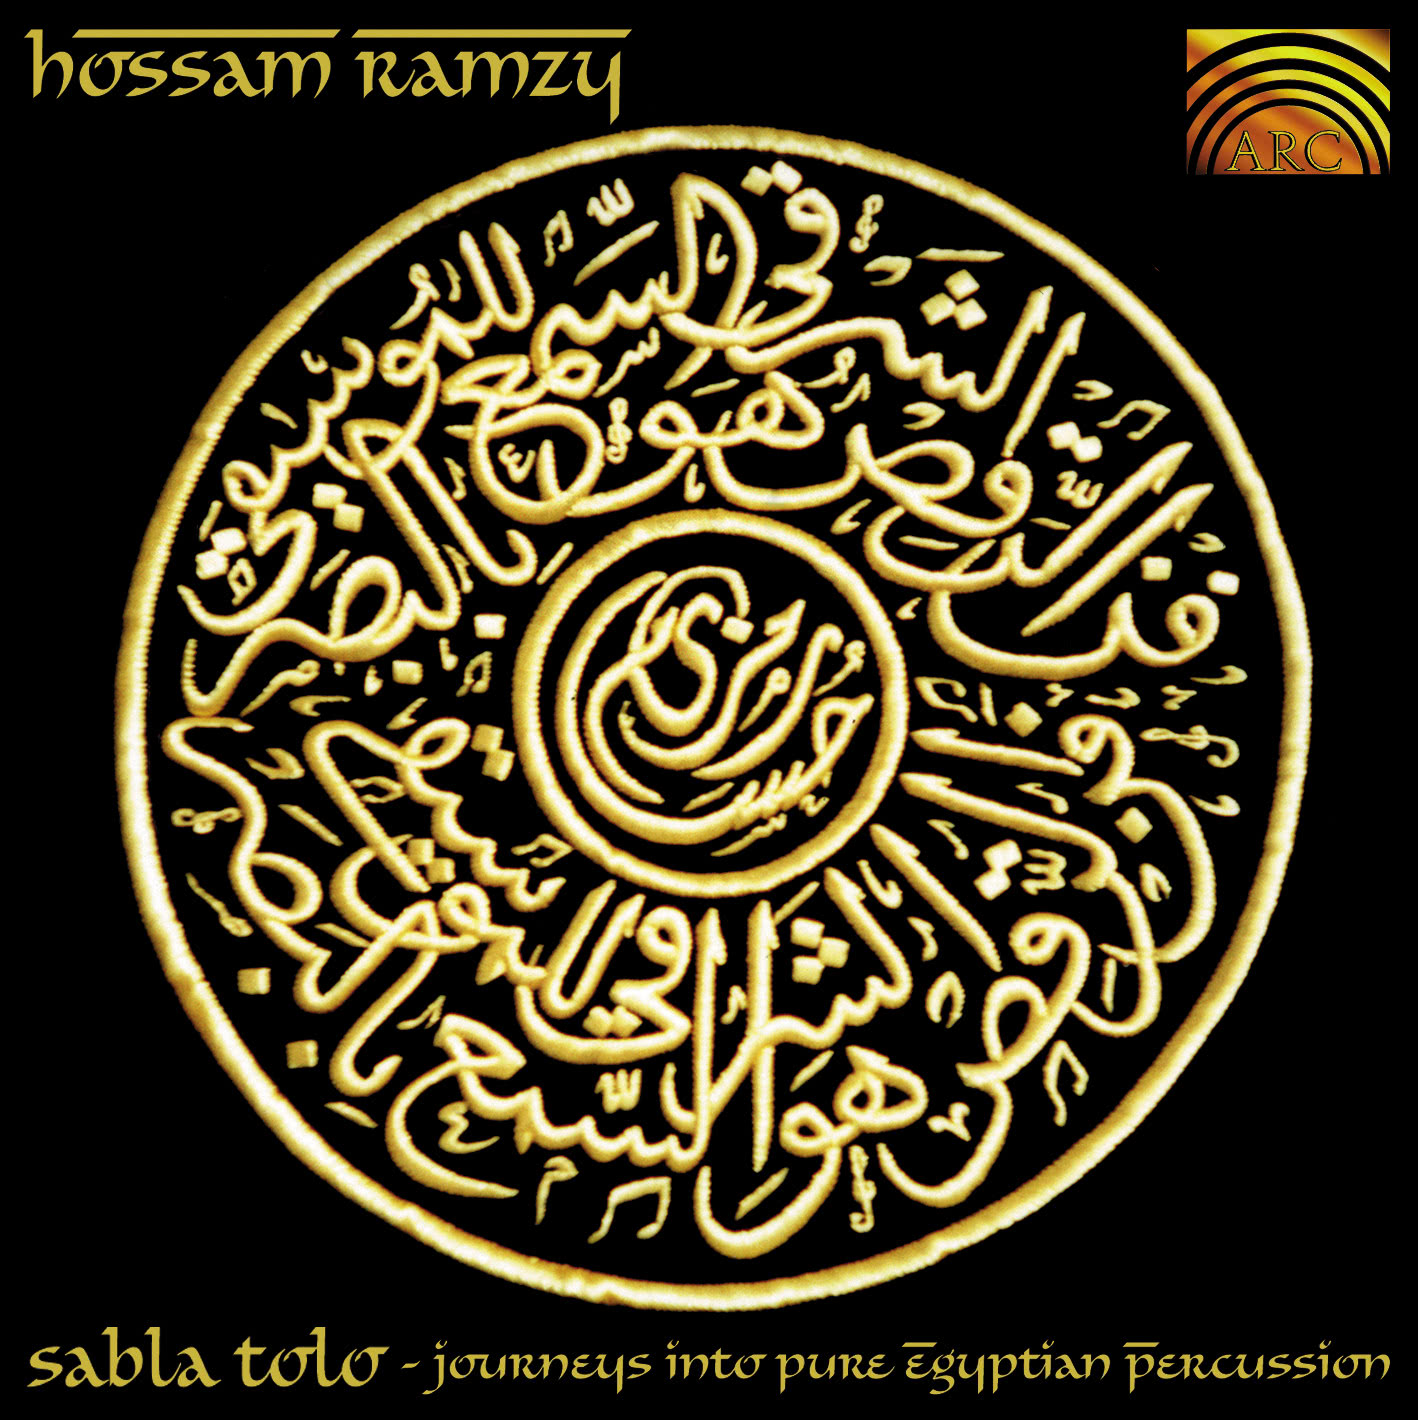 EUCD1581 Sabla Tolo - Journeys into pure Egyptian Percussion